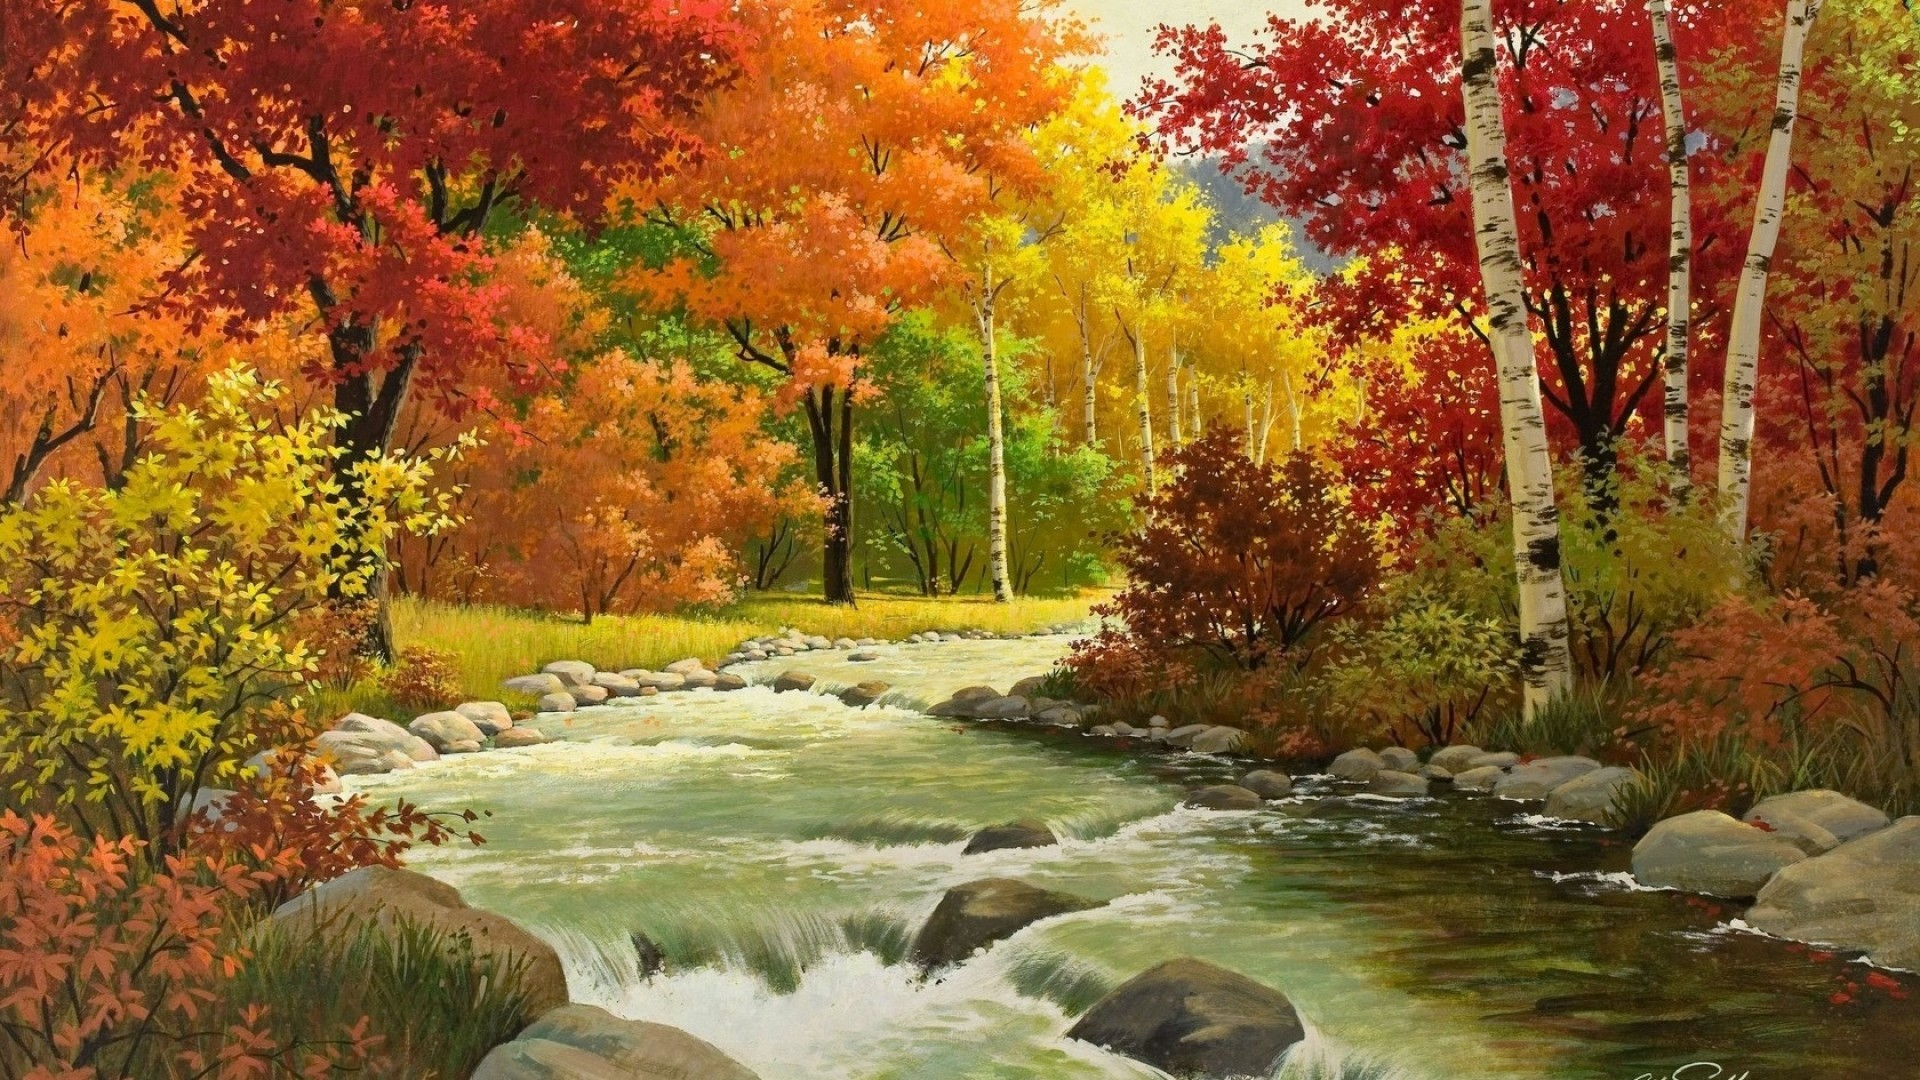 Fall Desktop Wallpapers Backgrounds 64 Images